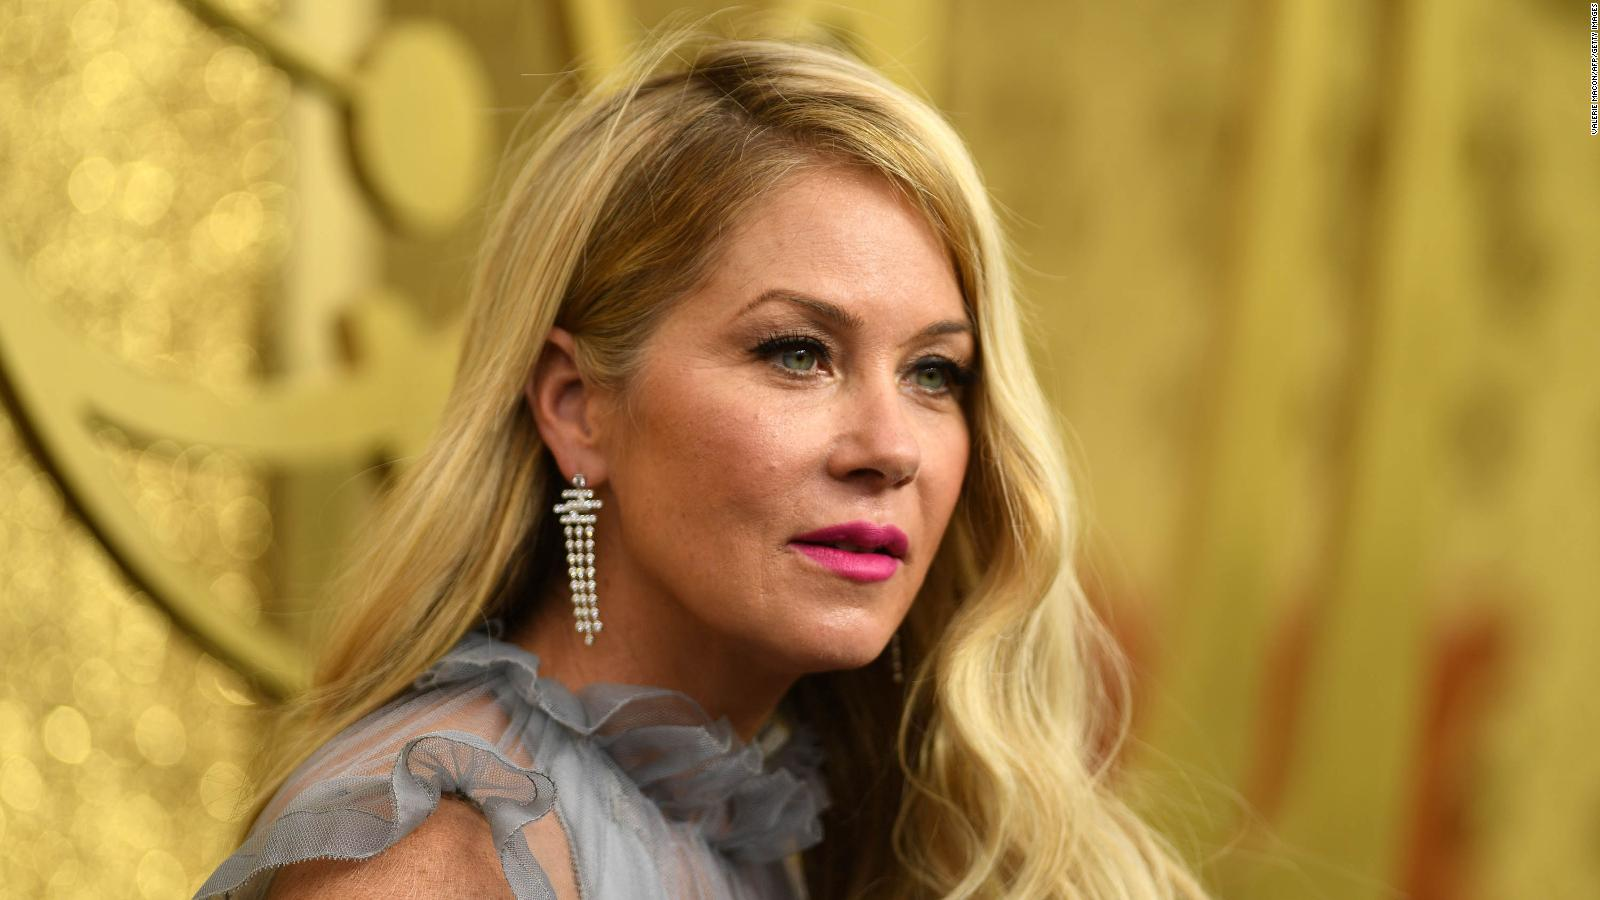 What is multiple sclerosis, the disease that actress Christina Applegate has?